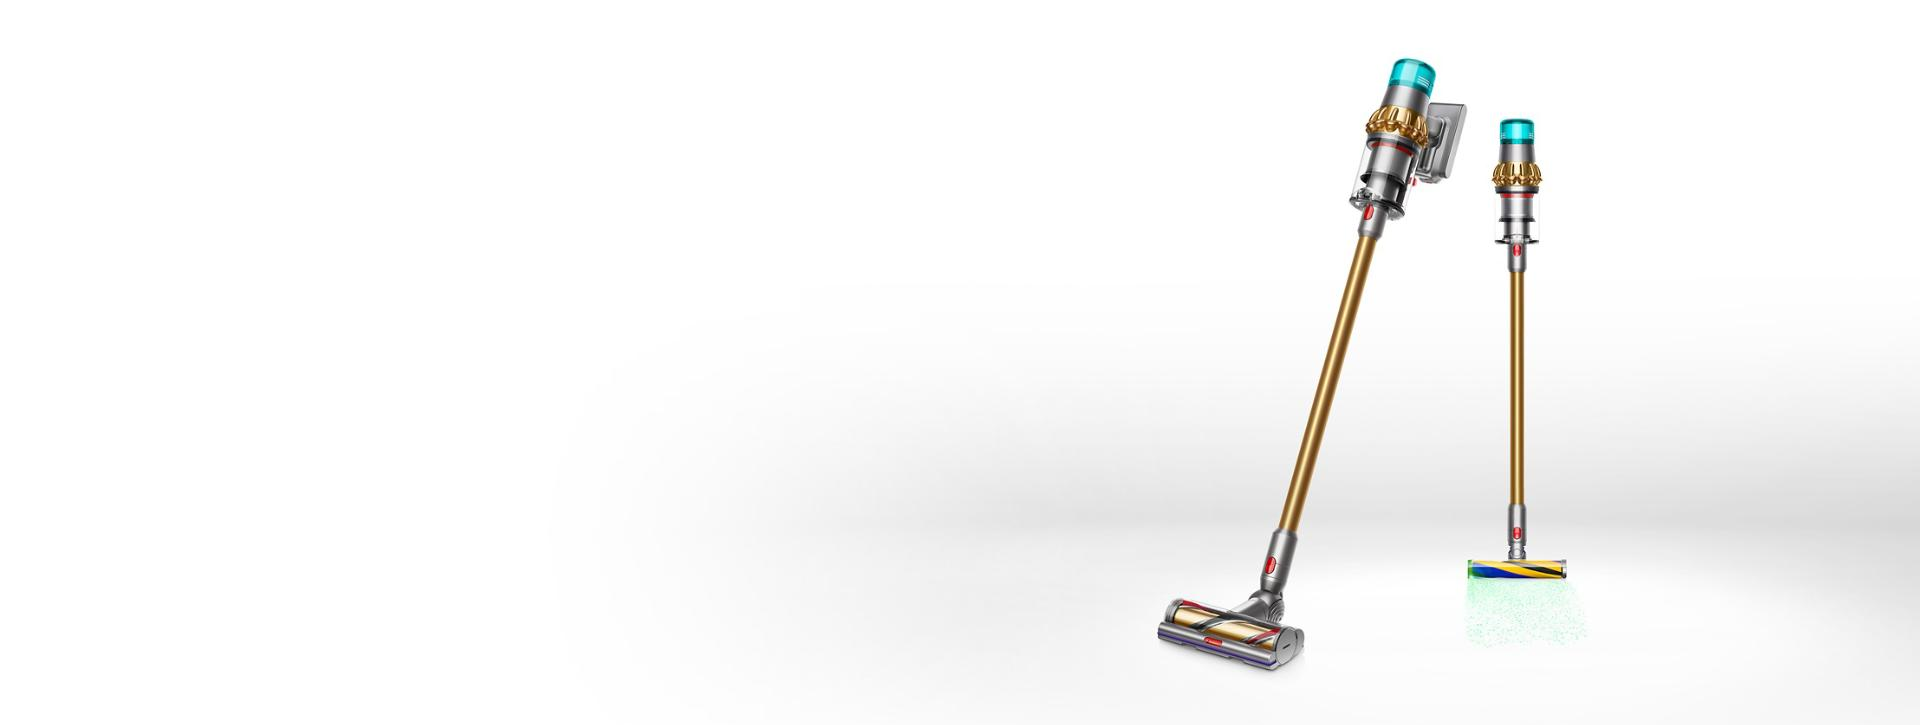 The Dyson V15 Detect vacuum cleaner